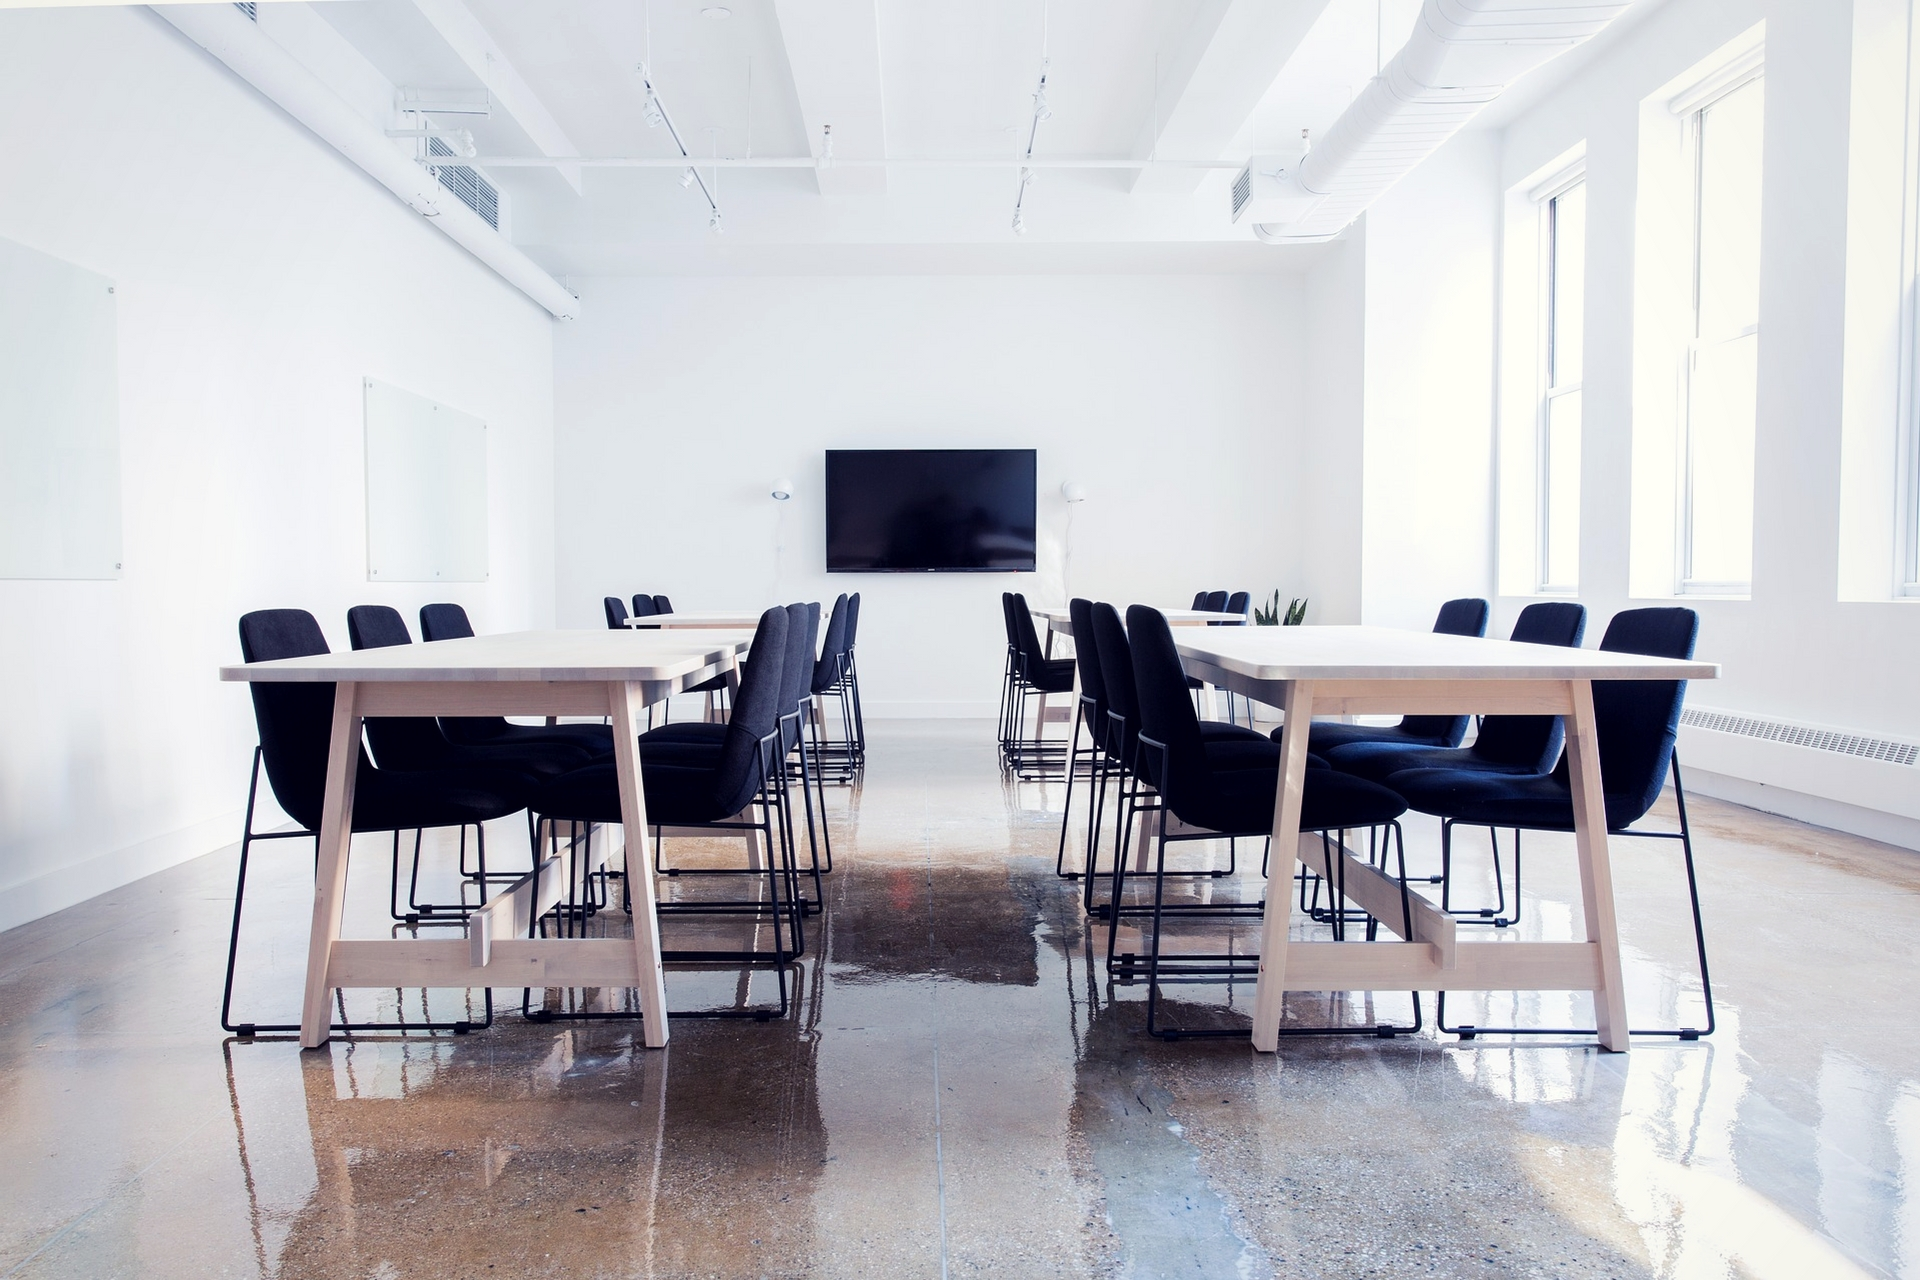 Top-Midsized-Cities-for-Meetings-and-Events